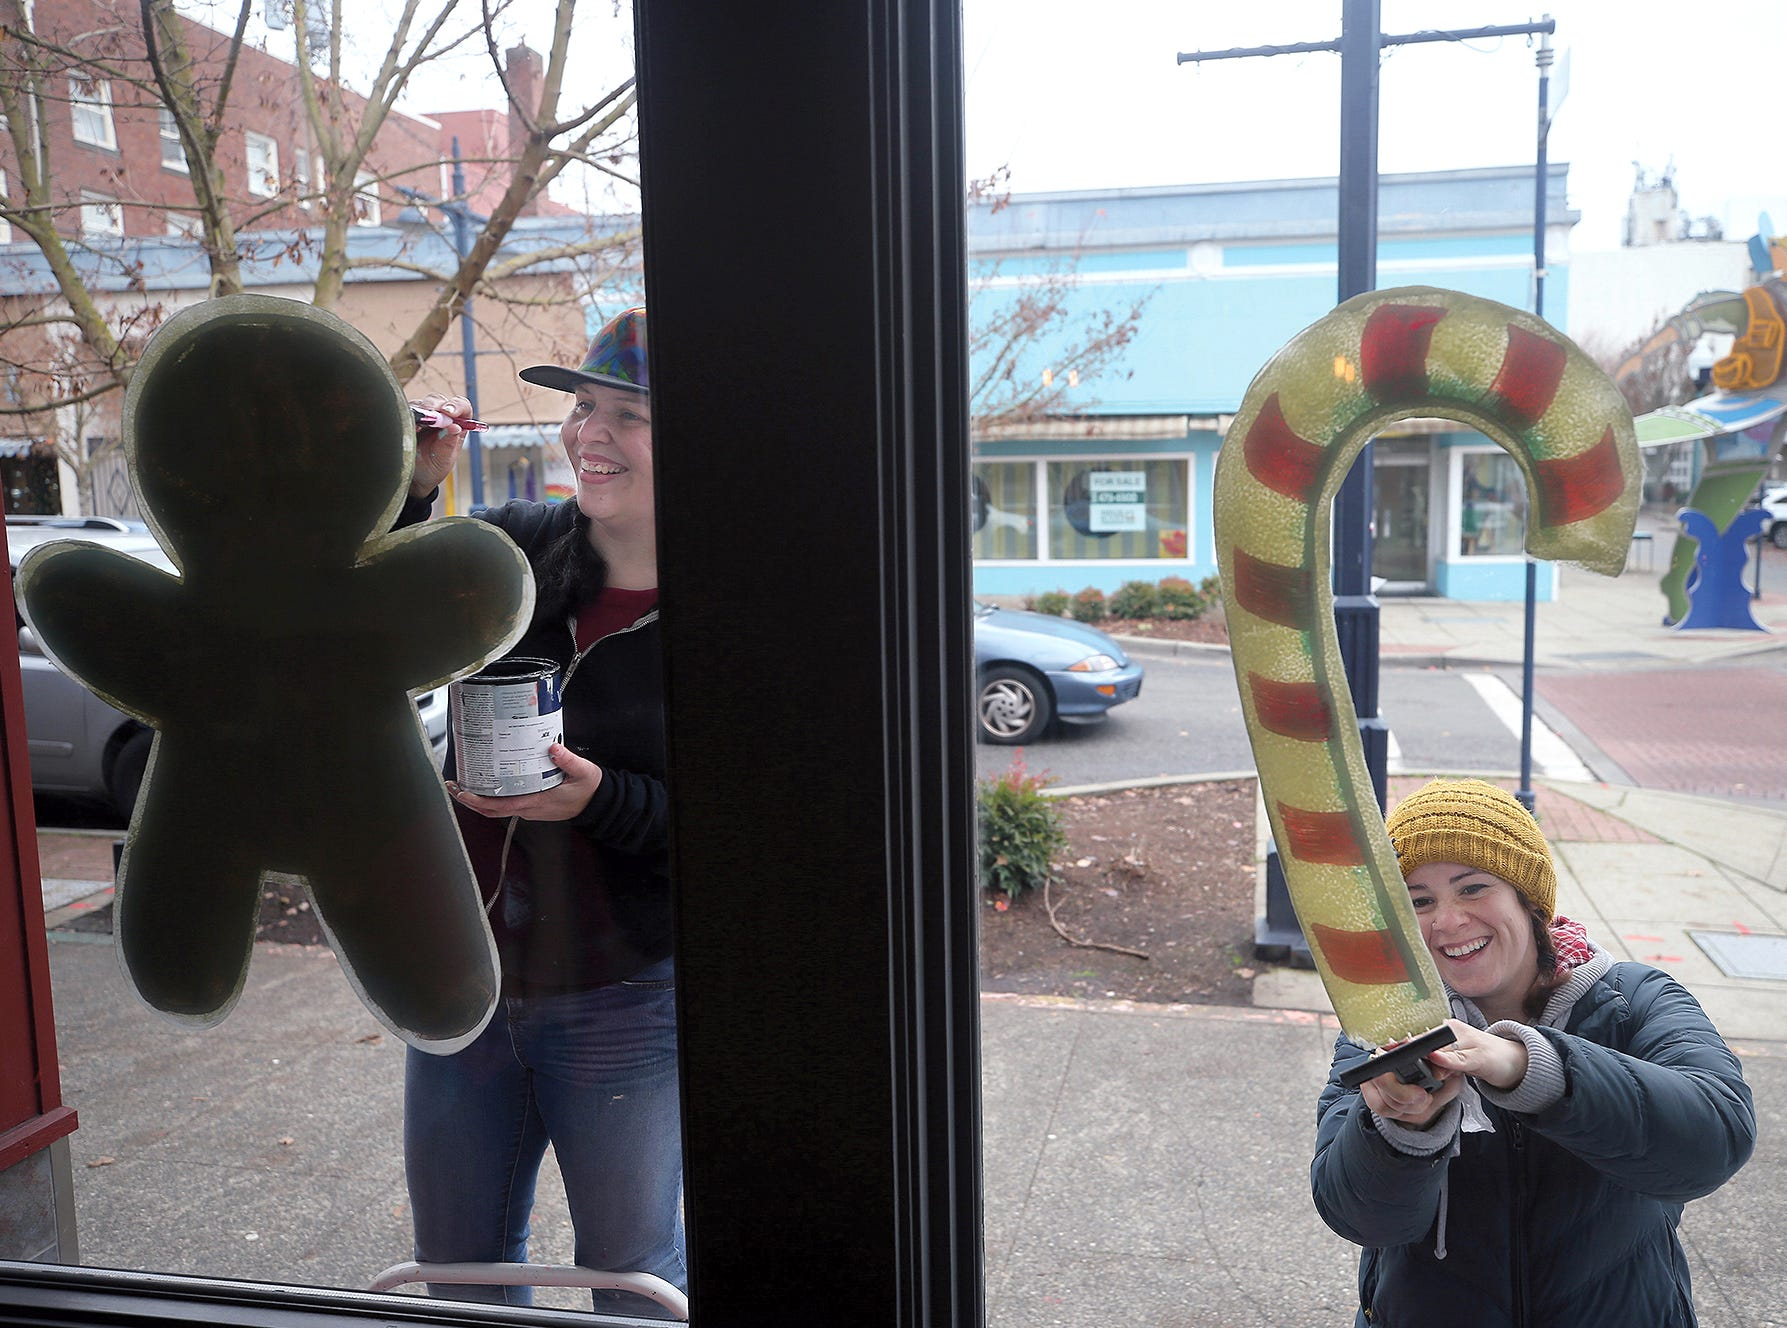 Window painter Danielle Rimbert, left, of Port Orchard and helper Christina Dempsey paint Christmas figures on the windows at the Hot Java Cafe at Fourth Street and Pacific Ave. in downtown Bremerton on Monday, December 3, 2018.